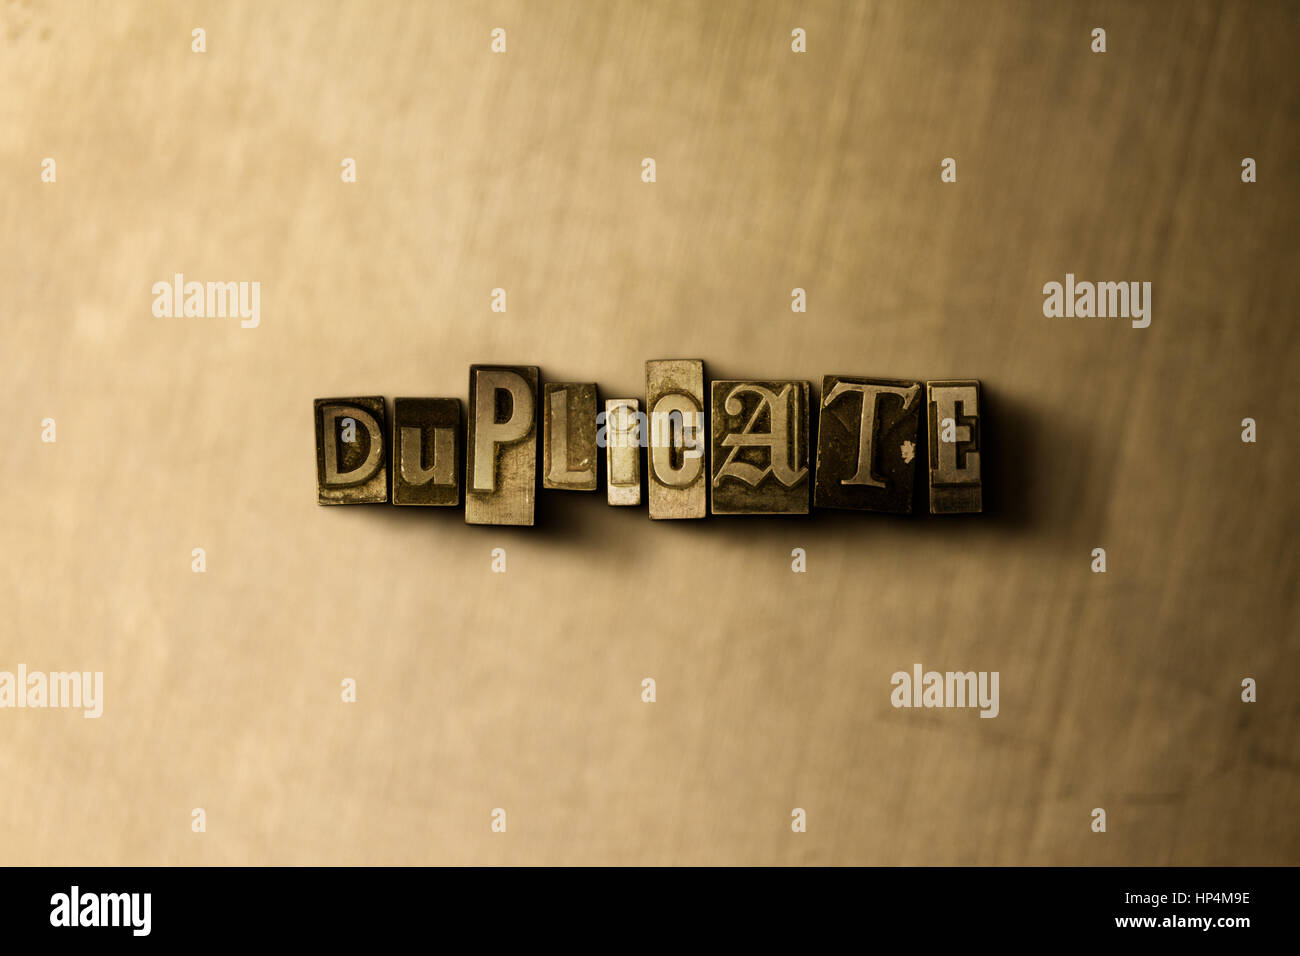 DUPLICATE - close-up of grungy vintage typeset word on metal backdrop. Royalty free stock illustration.  Can be - Stock Image